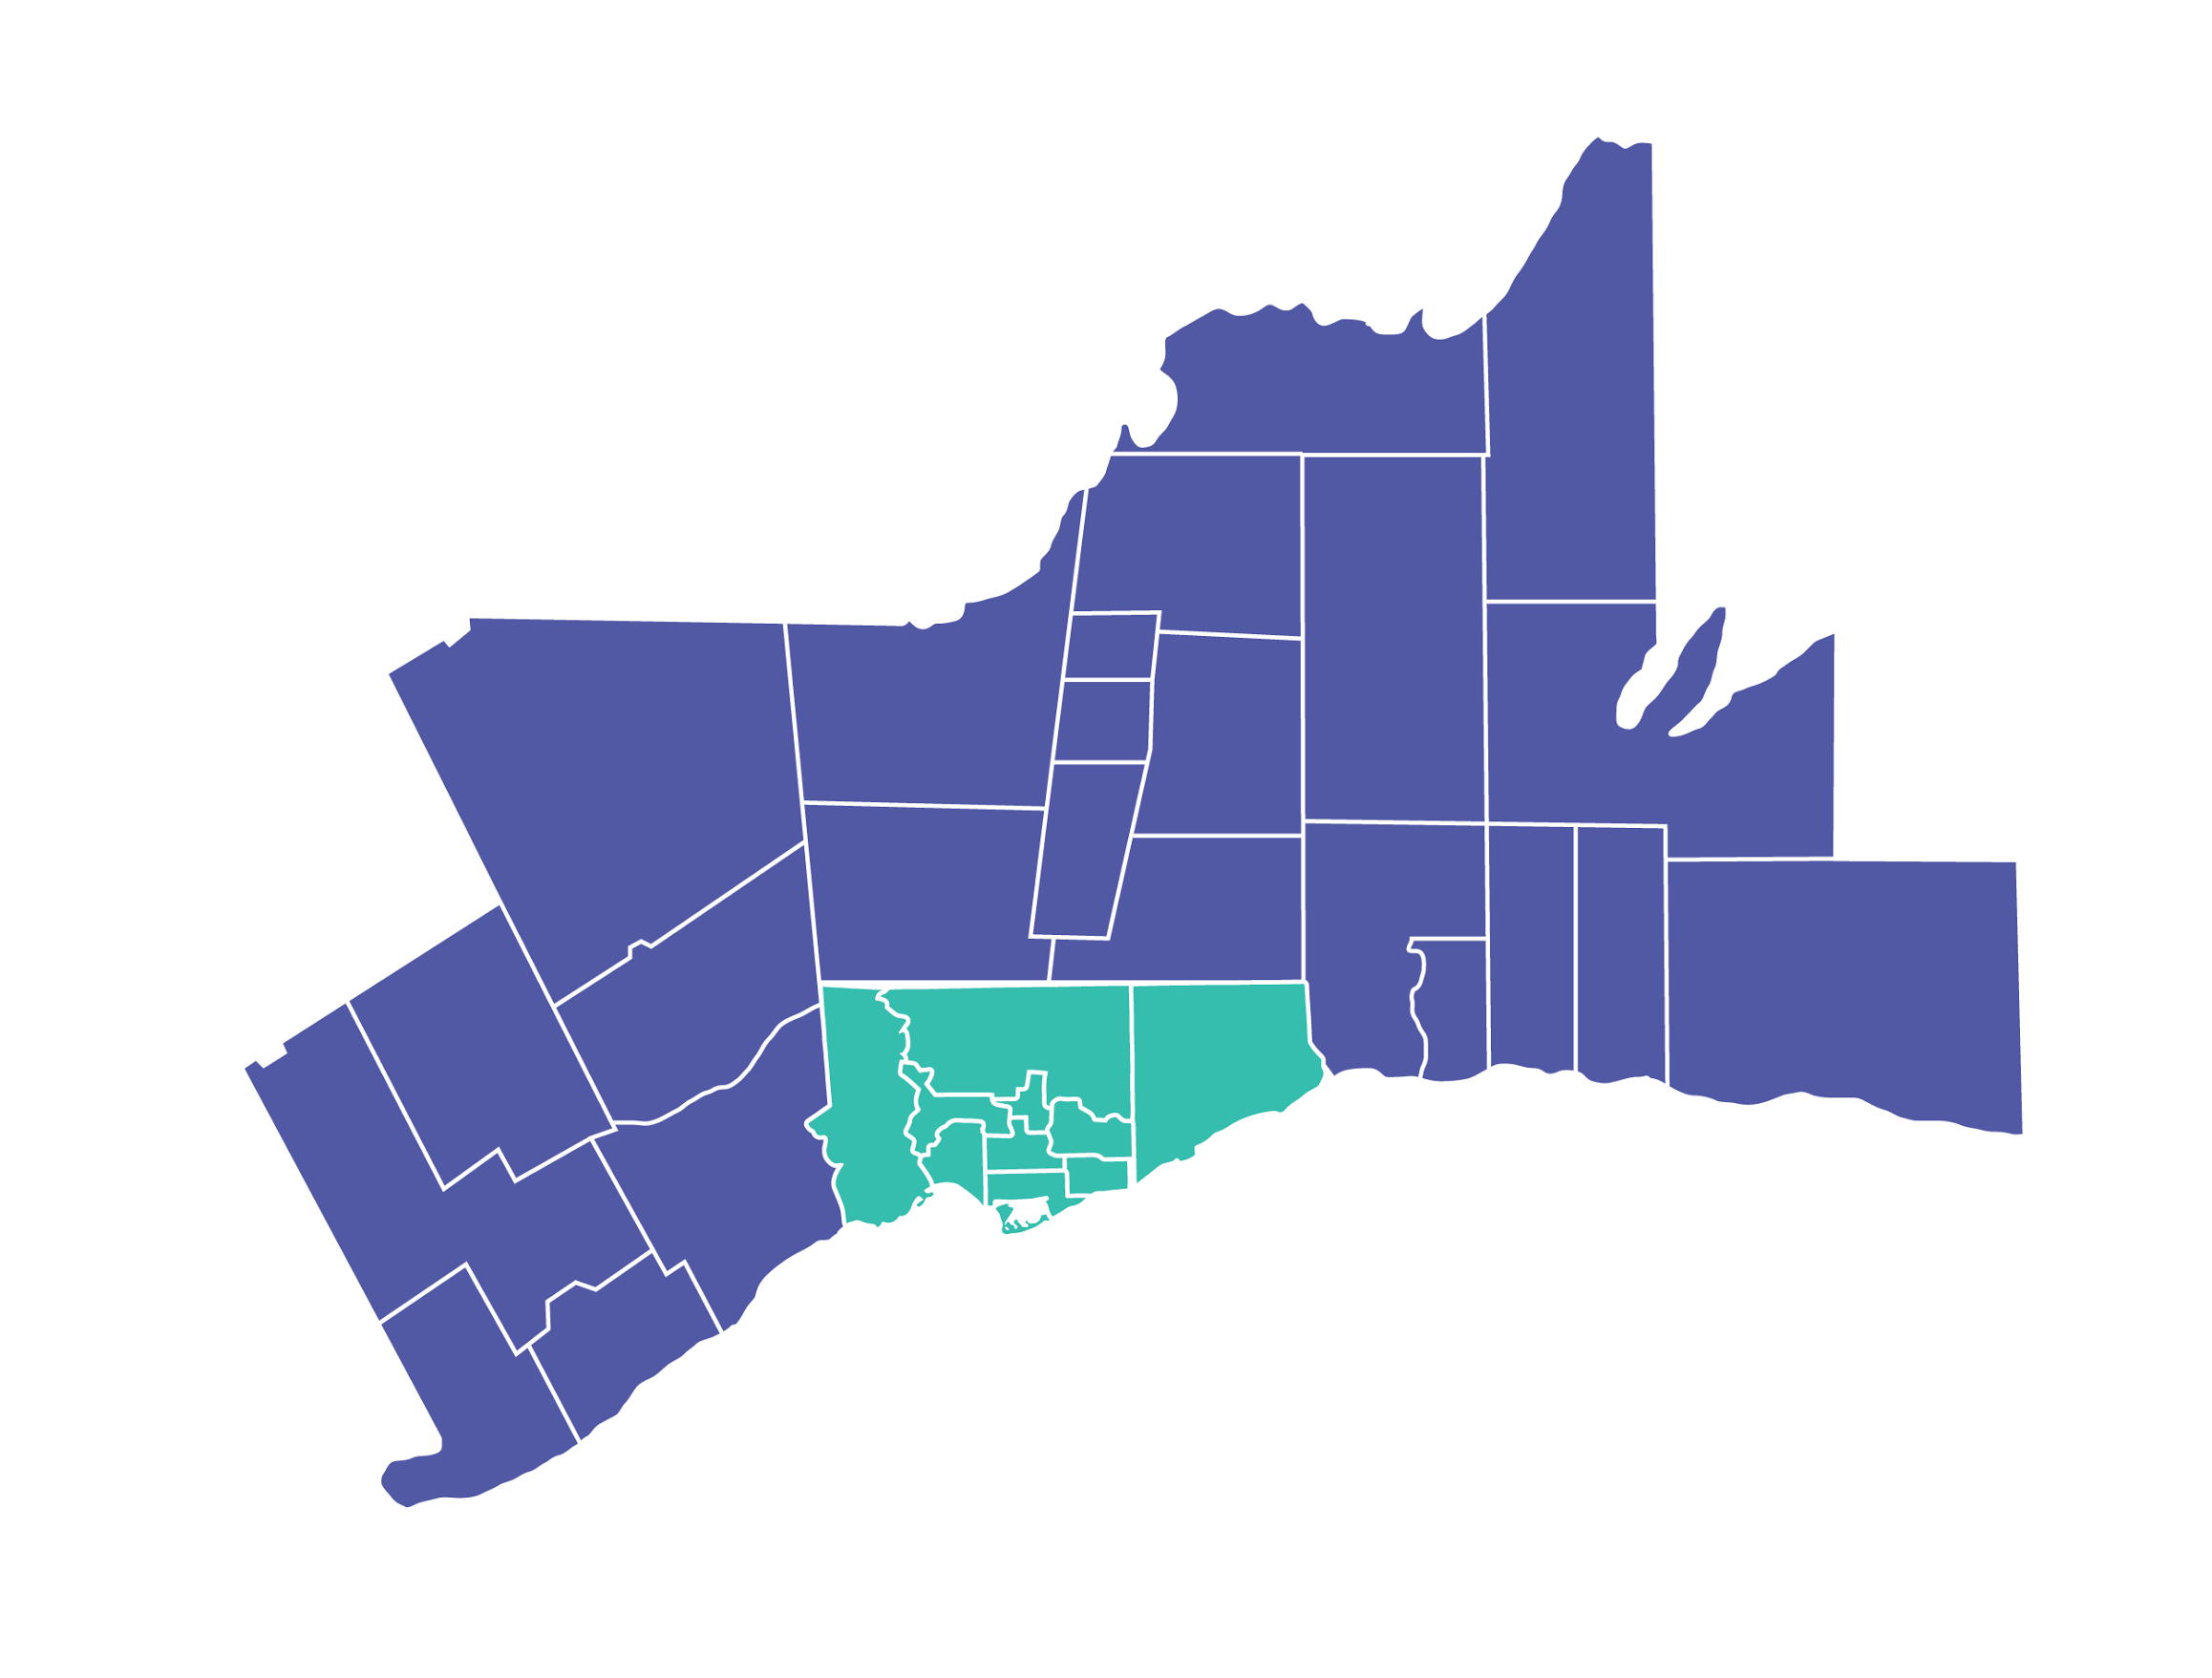 Area served in Toronto